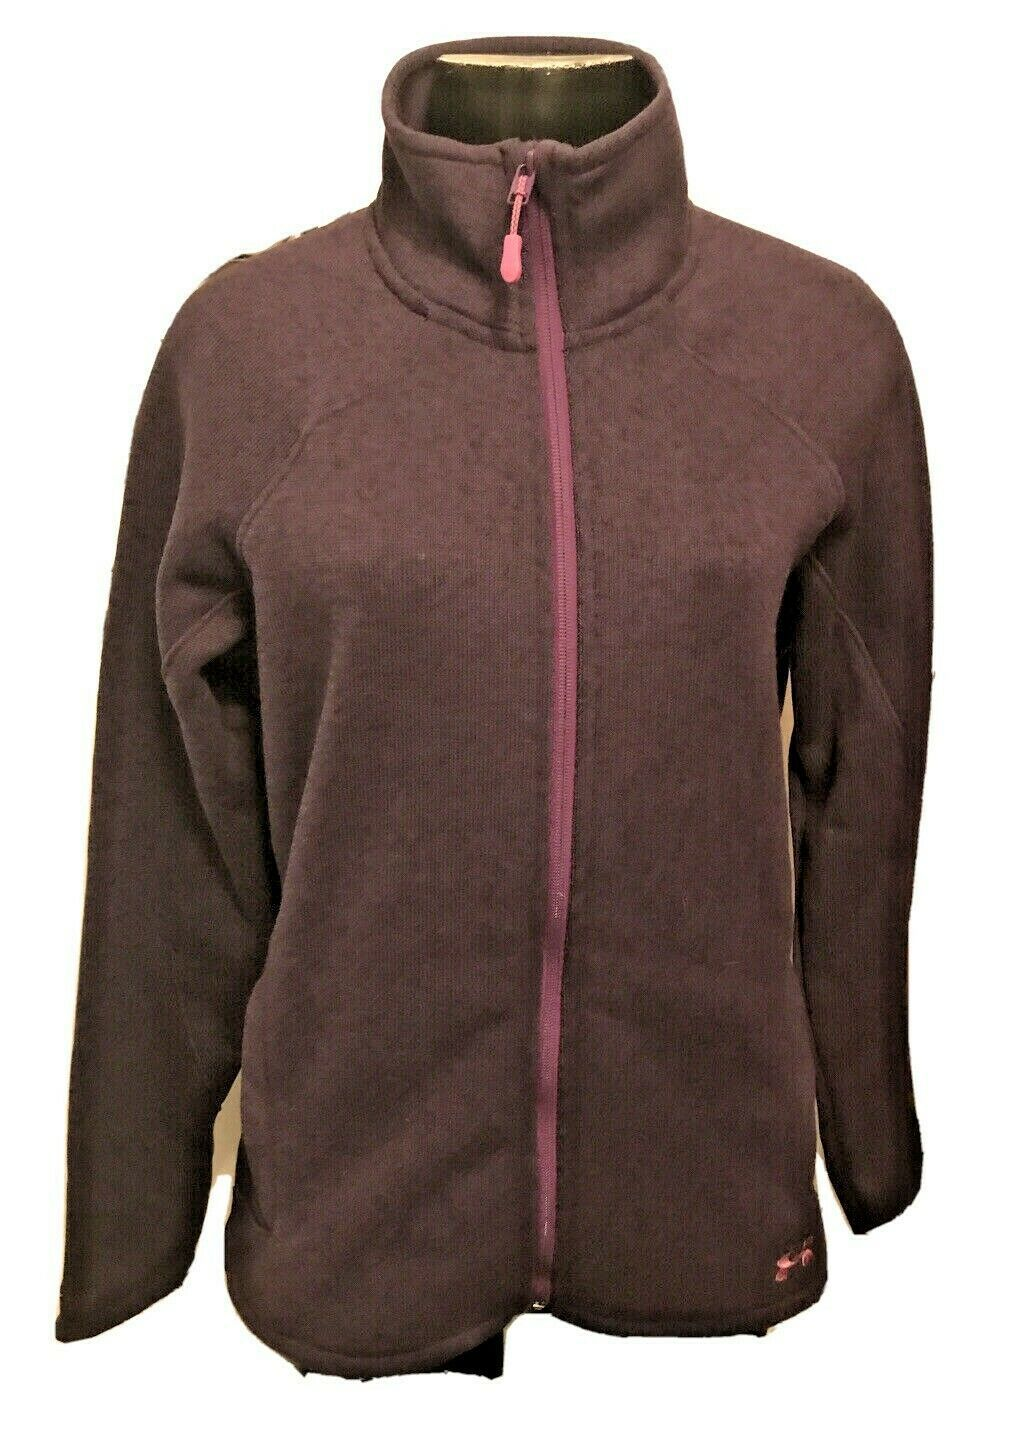 Primary image for Large Under Amour Fitted Coldgear Full Zip Womens Purple Jacket NWT